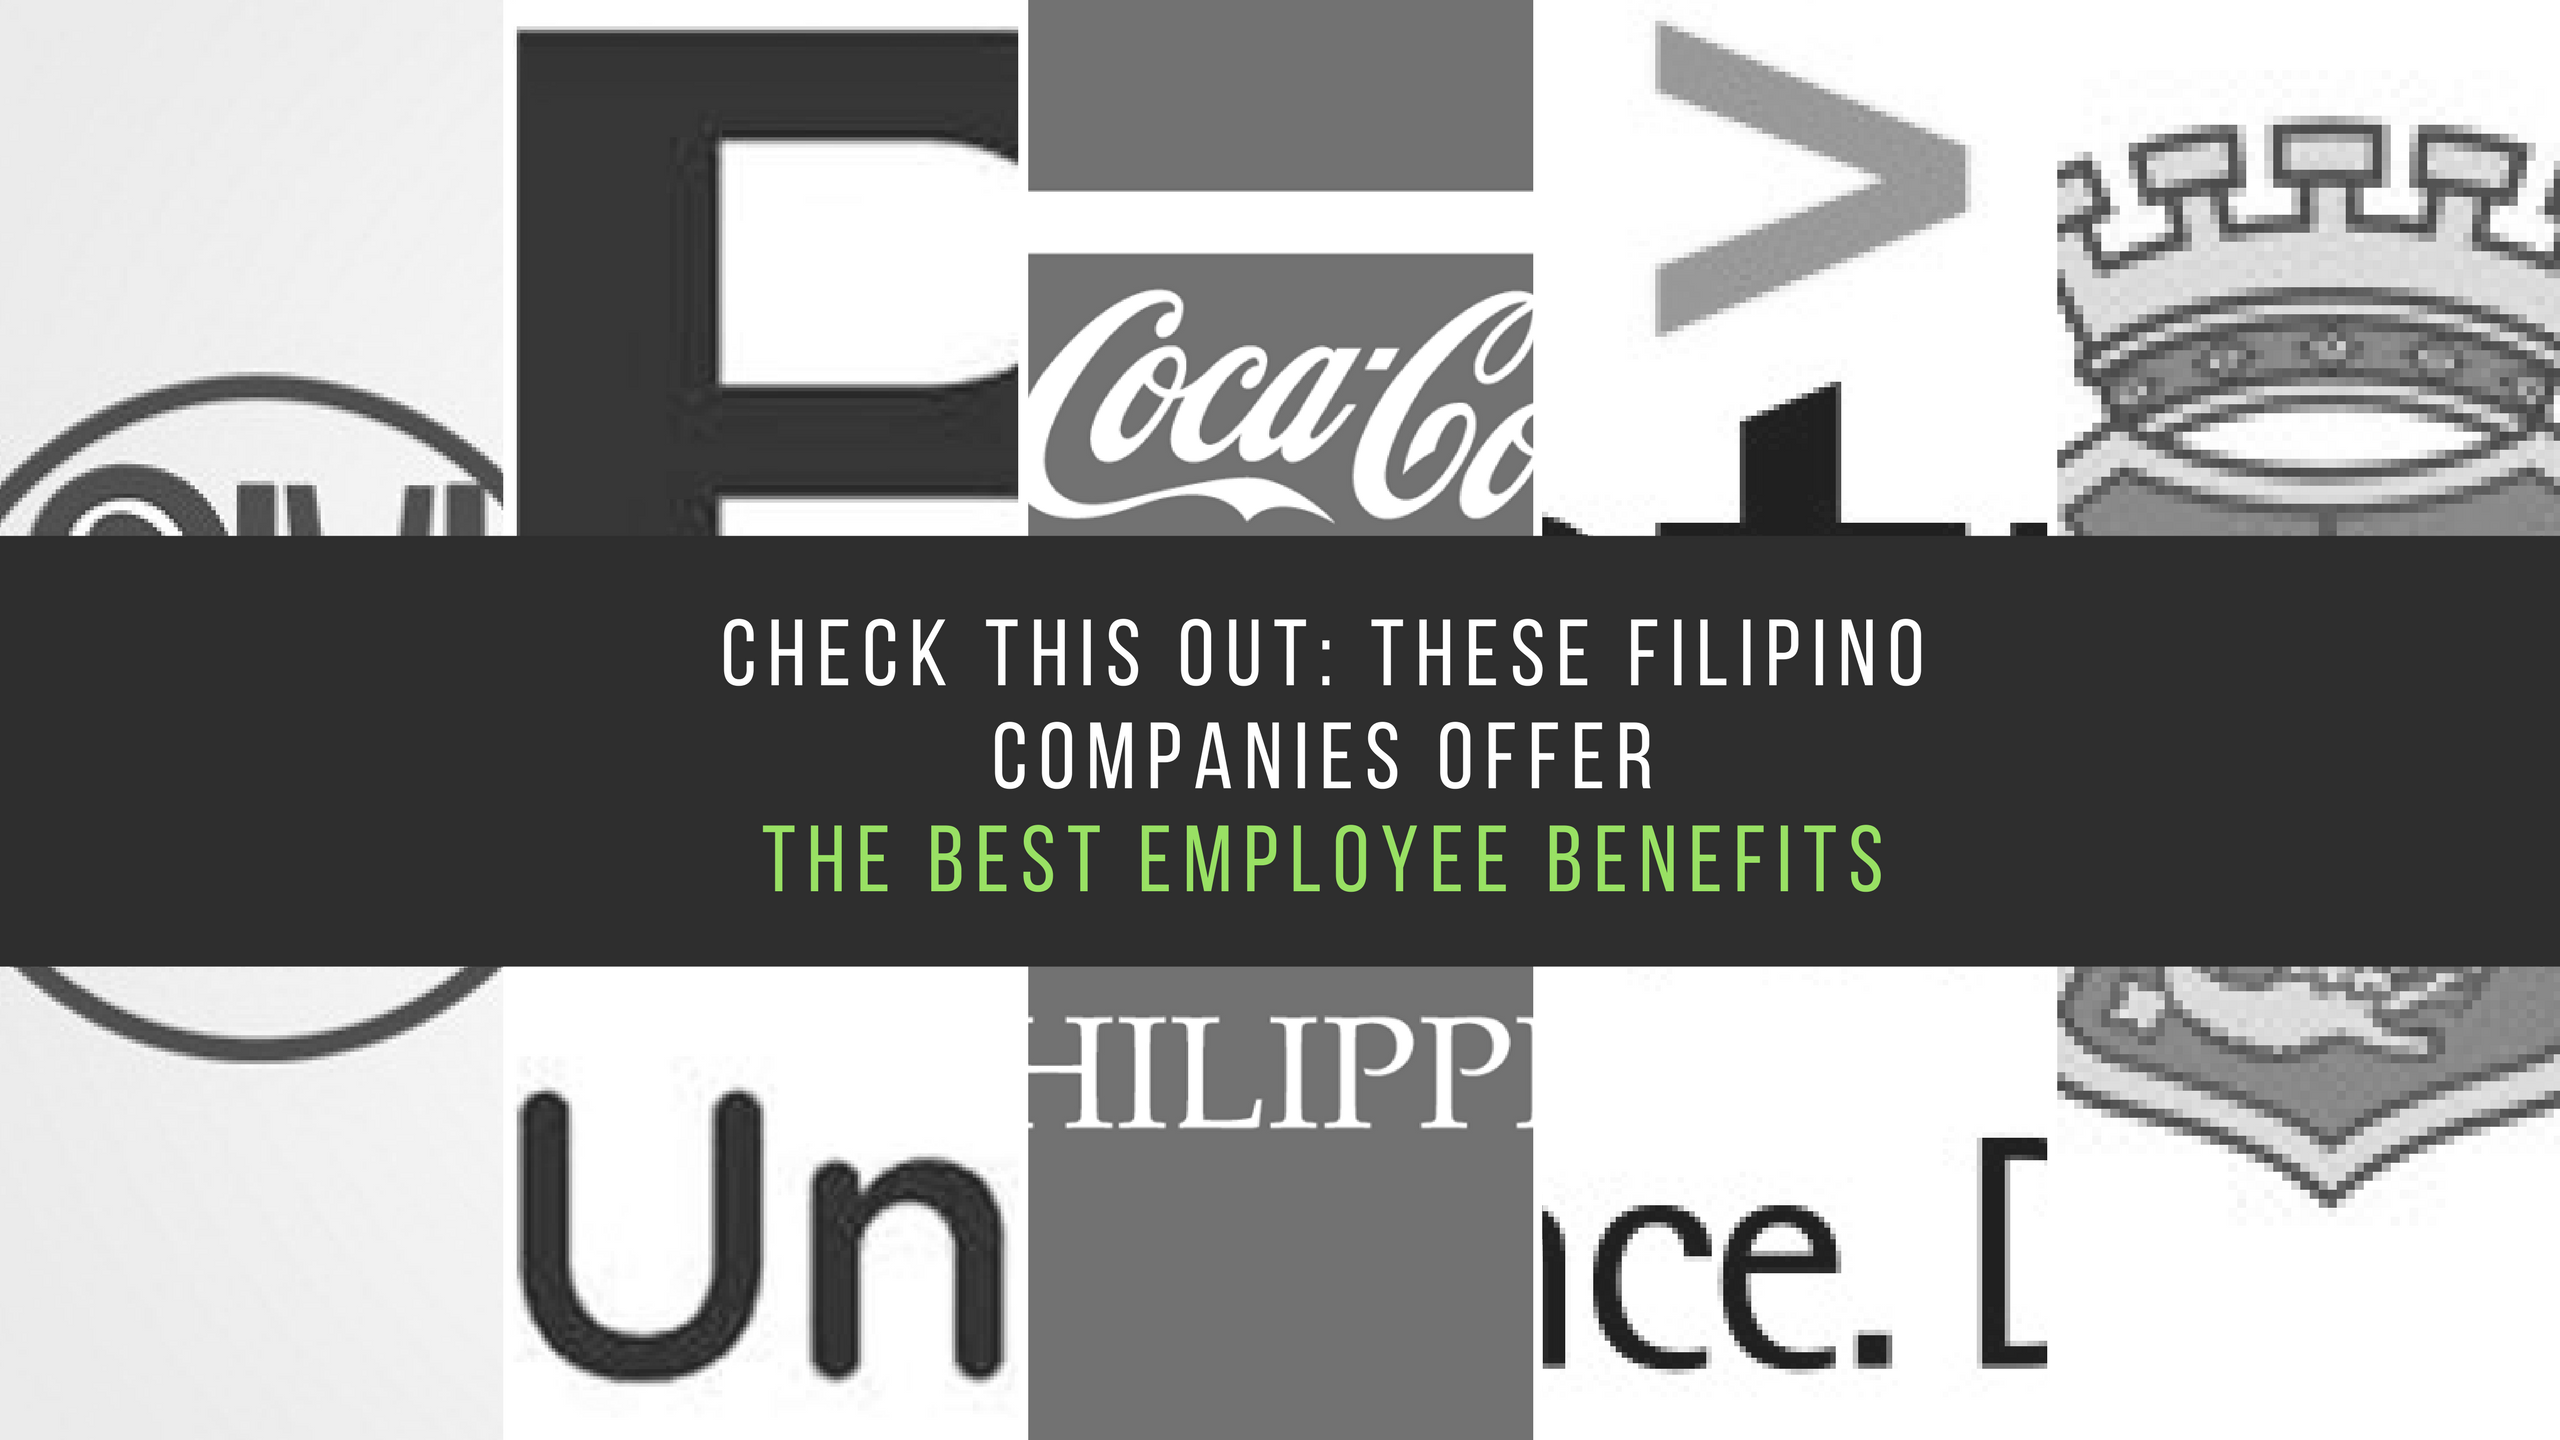 7 Filipino Companies That Will Offer You The Best Employee Benefits